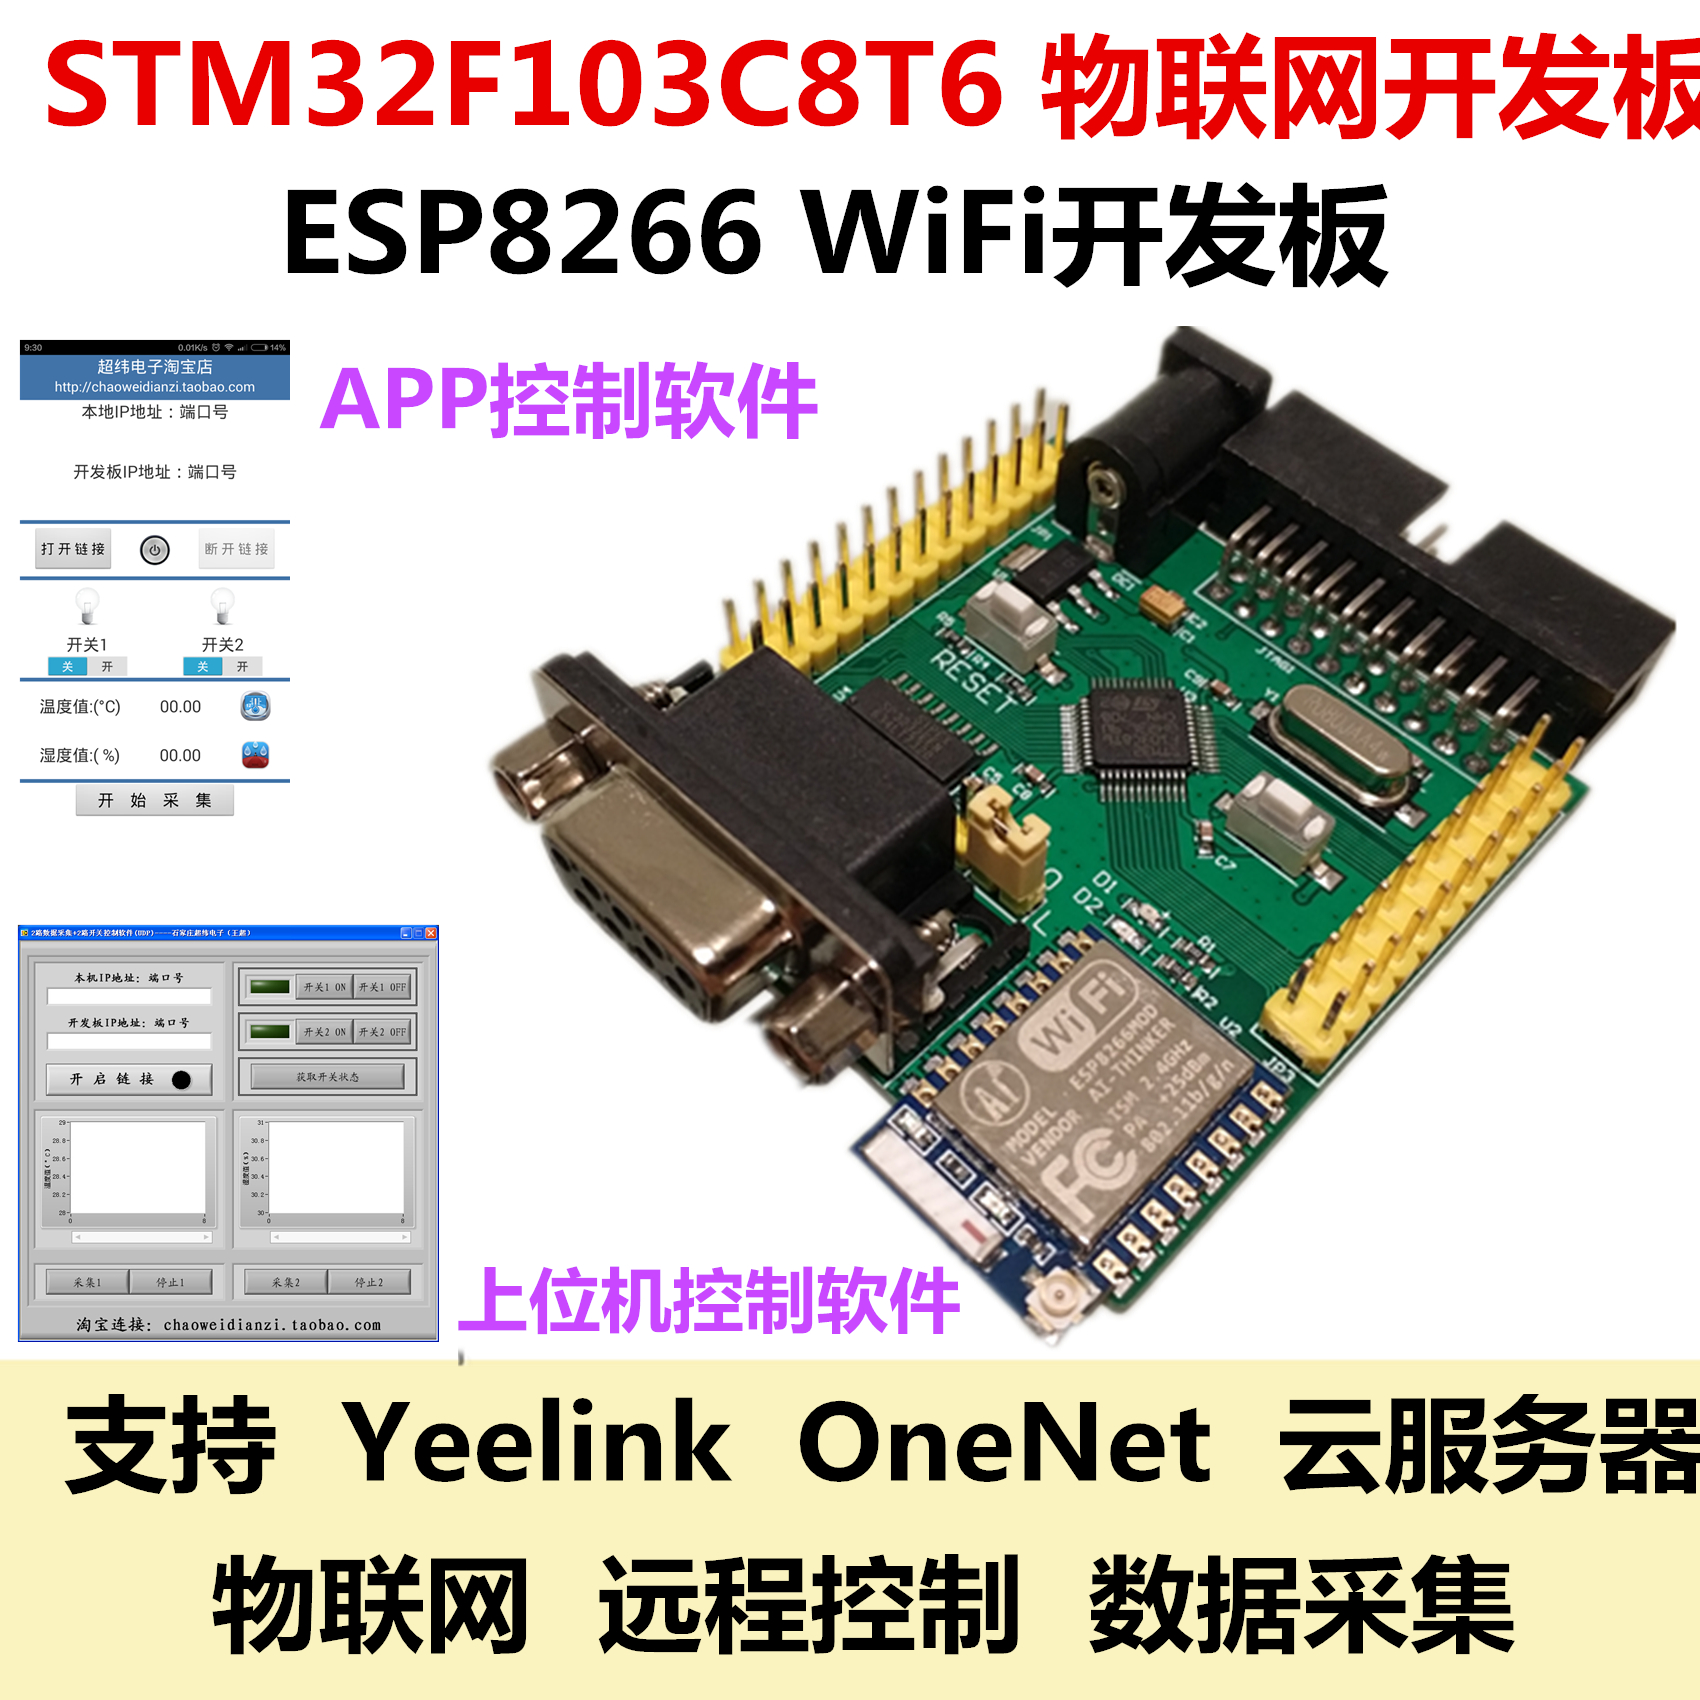 Internet of Things Remote Control, STM32 Development Board, Esp8266 WiFi Development Board, Smart Home lua wifi nodemcu internet of things development board based on cp2102 esp8266